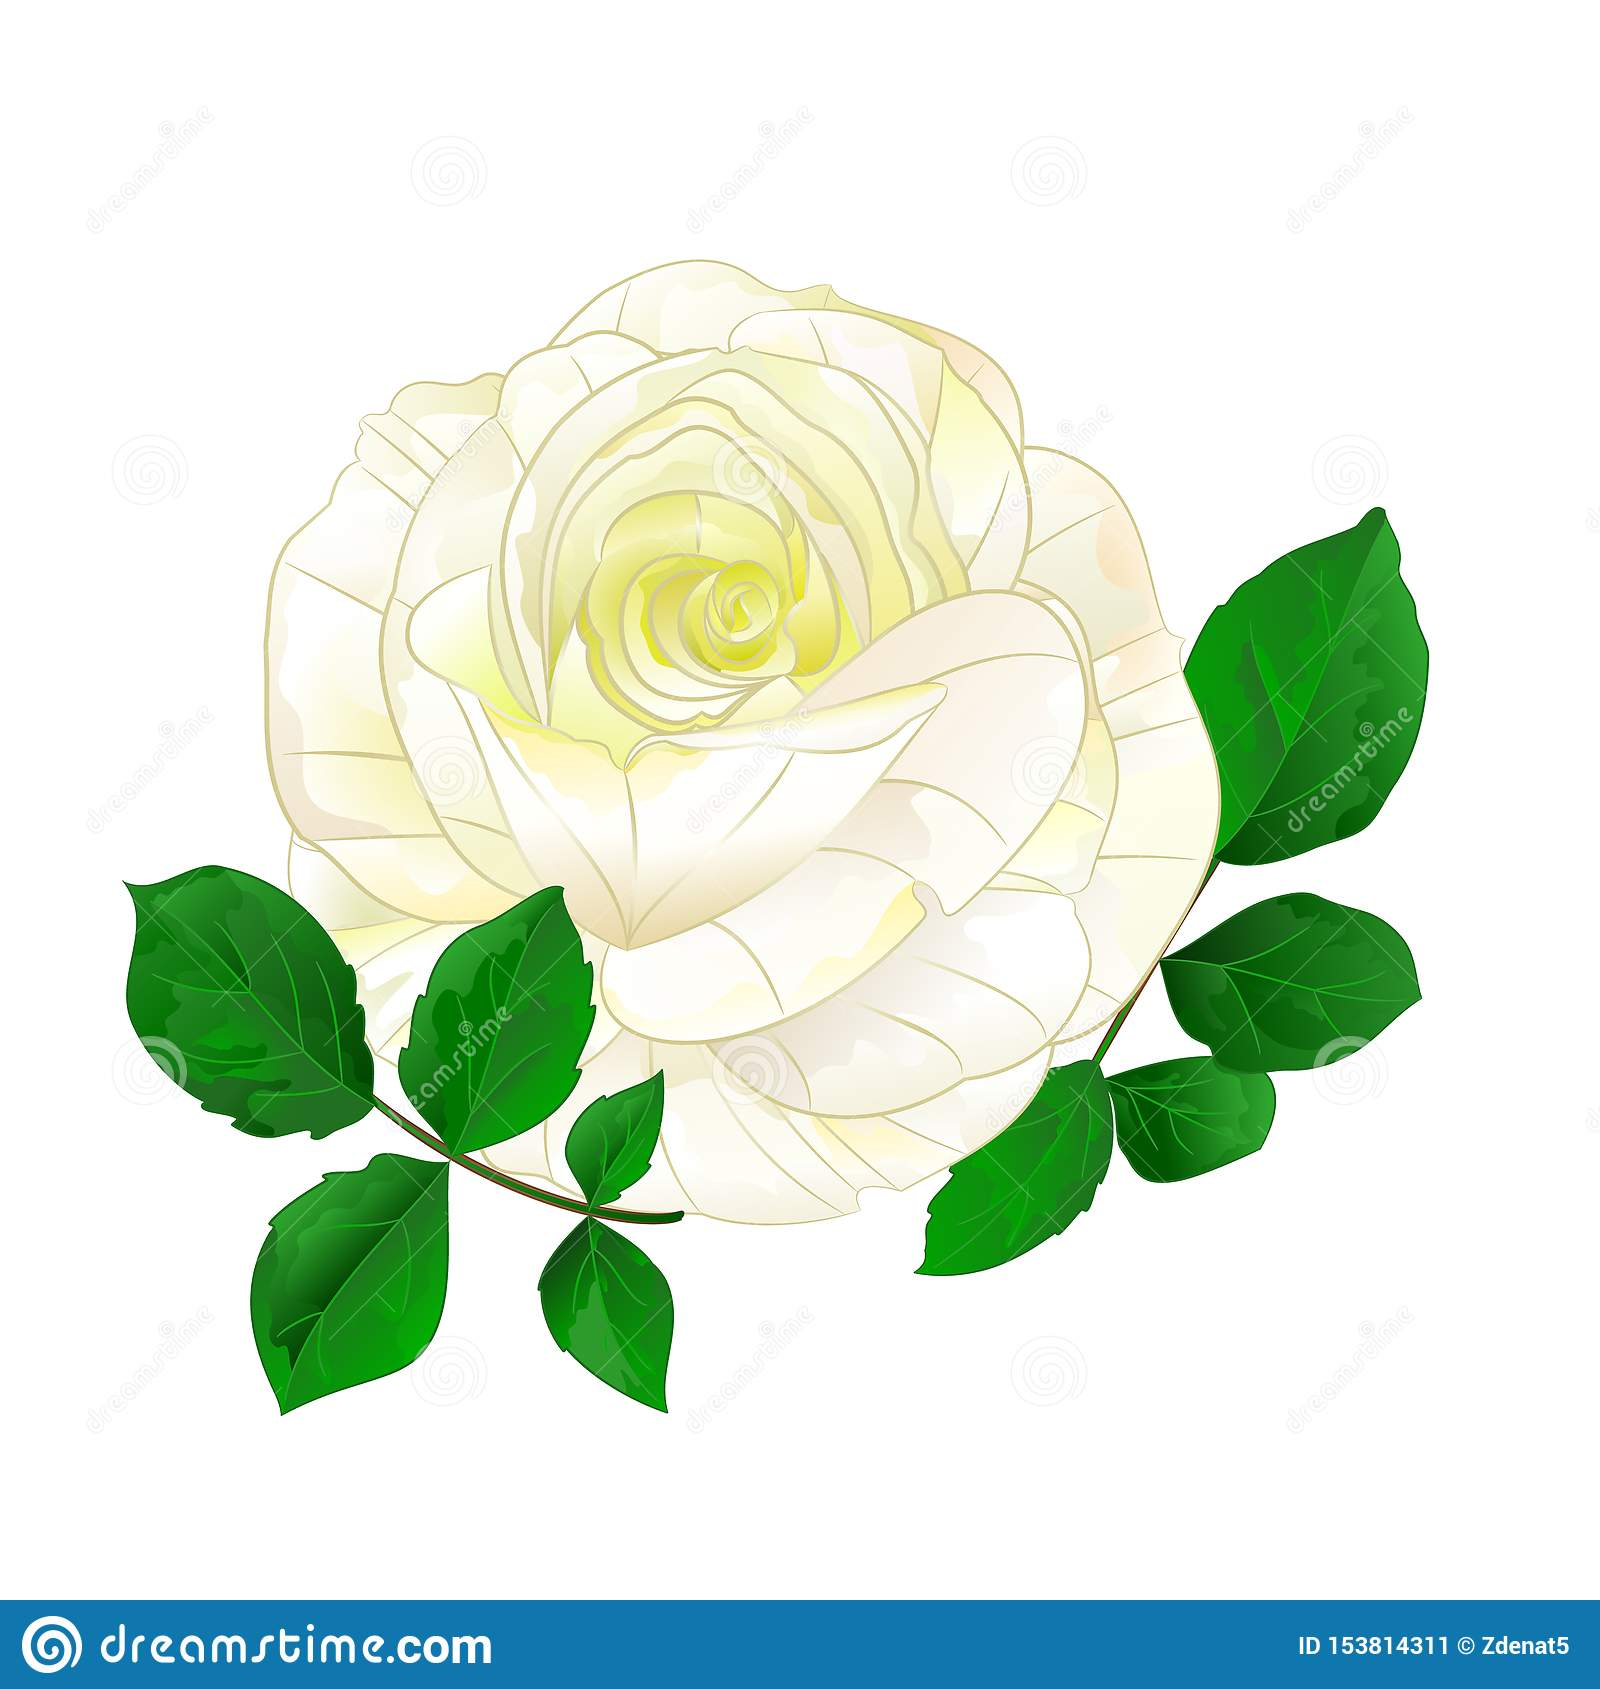 White Rose Simple Stem With Leaves Vintage On A White Background Vintage Vector Illustration Stock Vector Illustration Of Isolated Heart 153814311